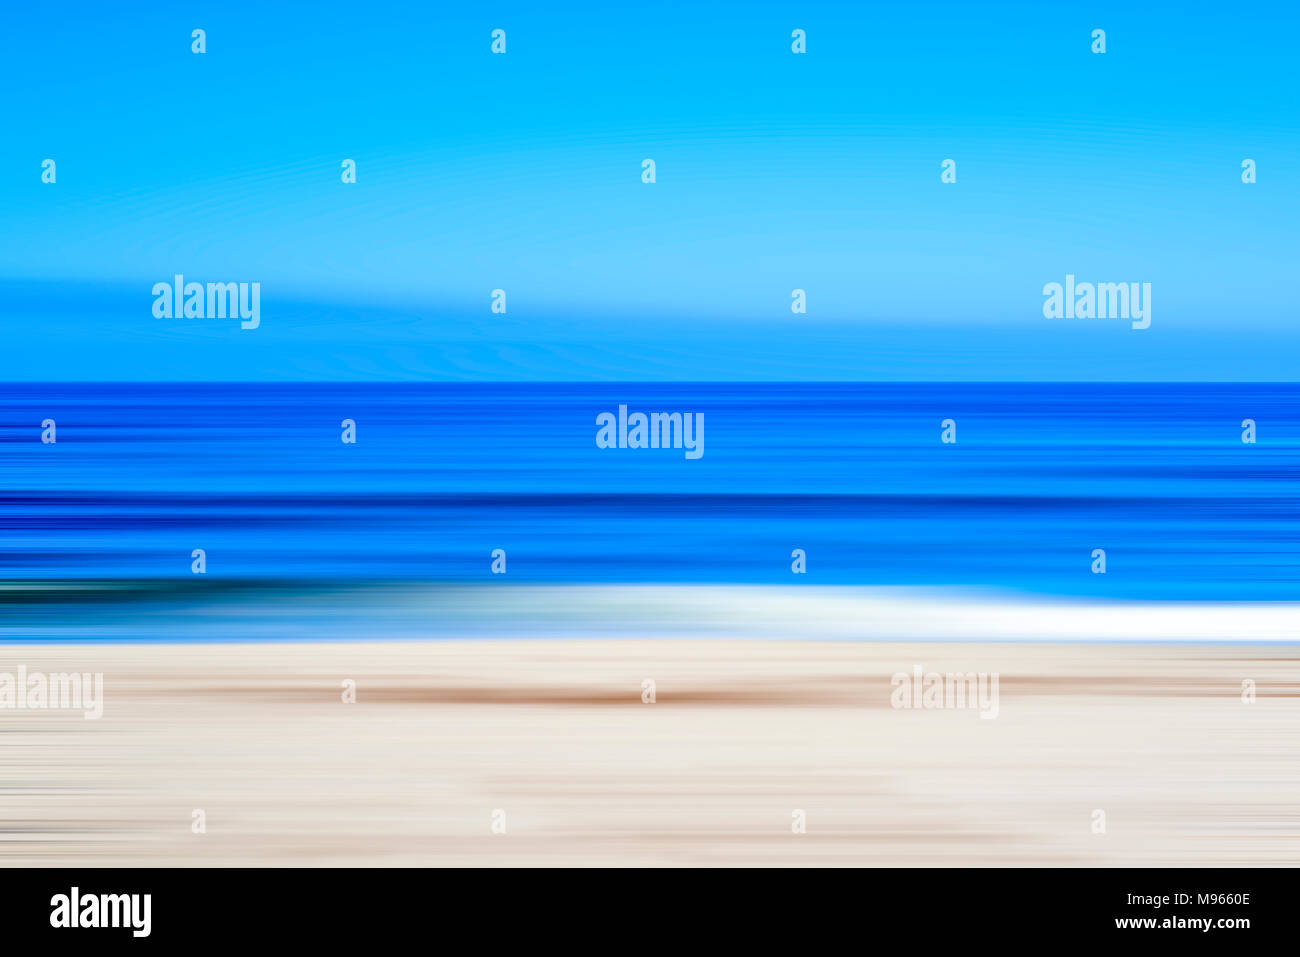 Coastal scene, ocean and beach. Motion blur effect, Impressionistic photography. - Stock Image